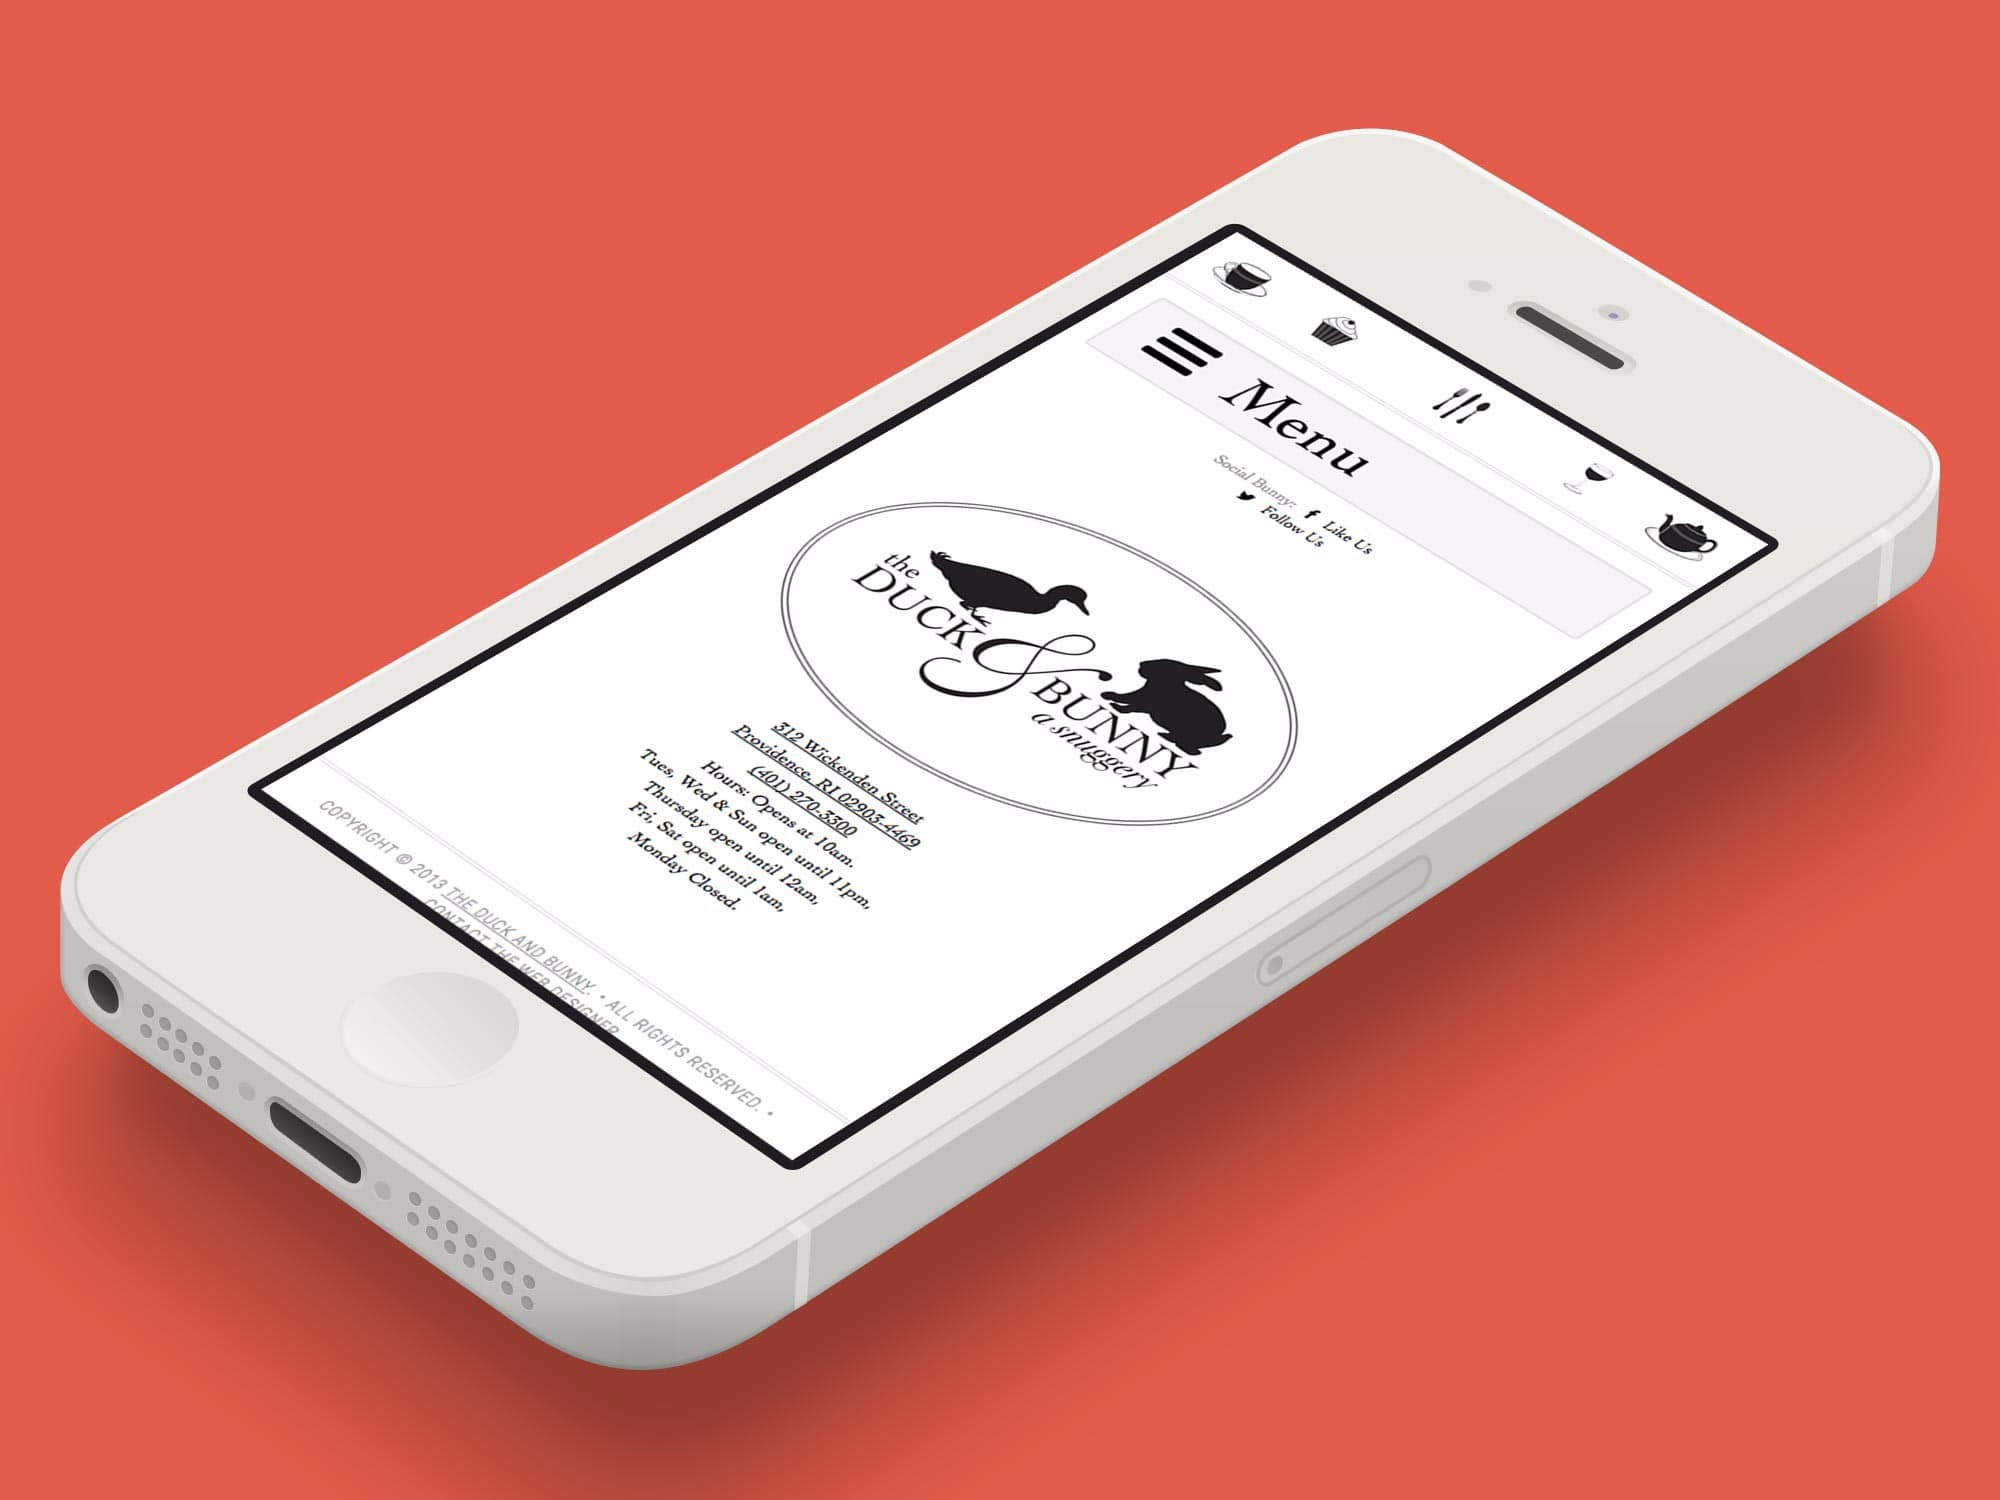 duck-iphone-mockup